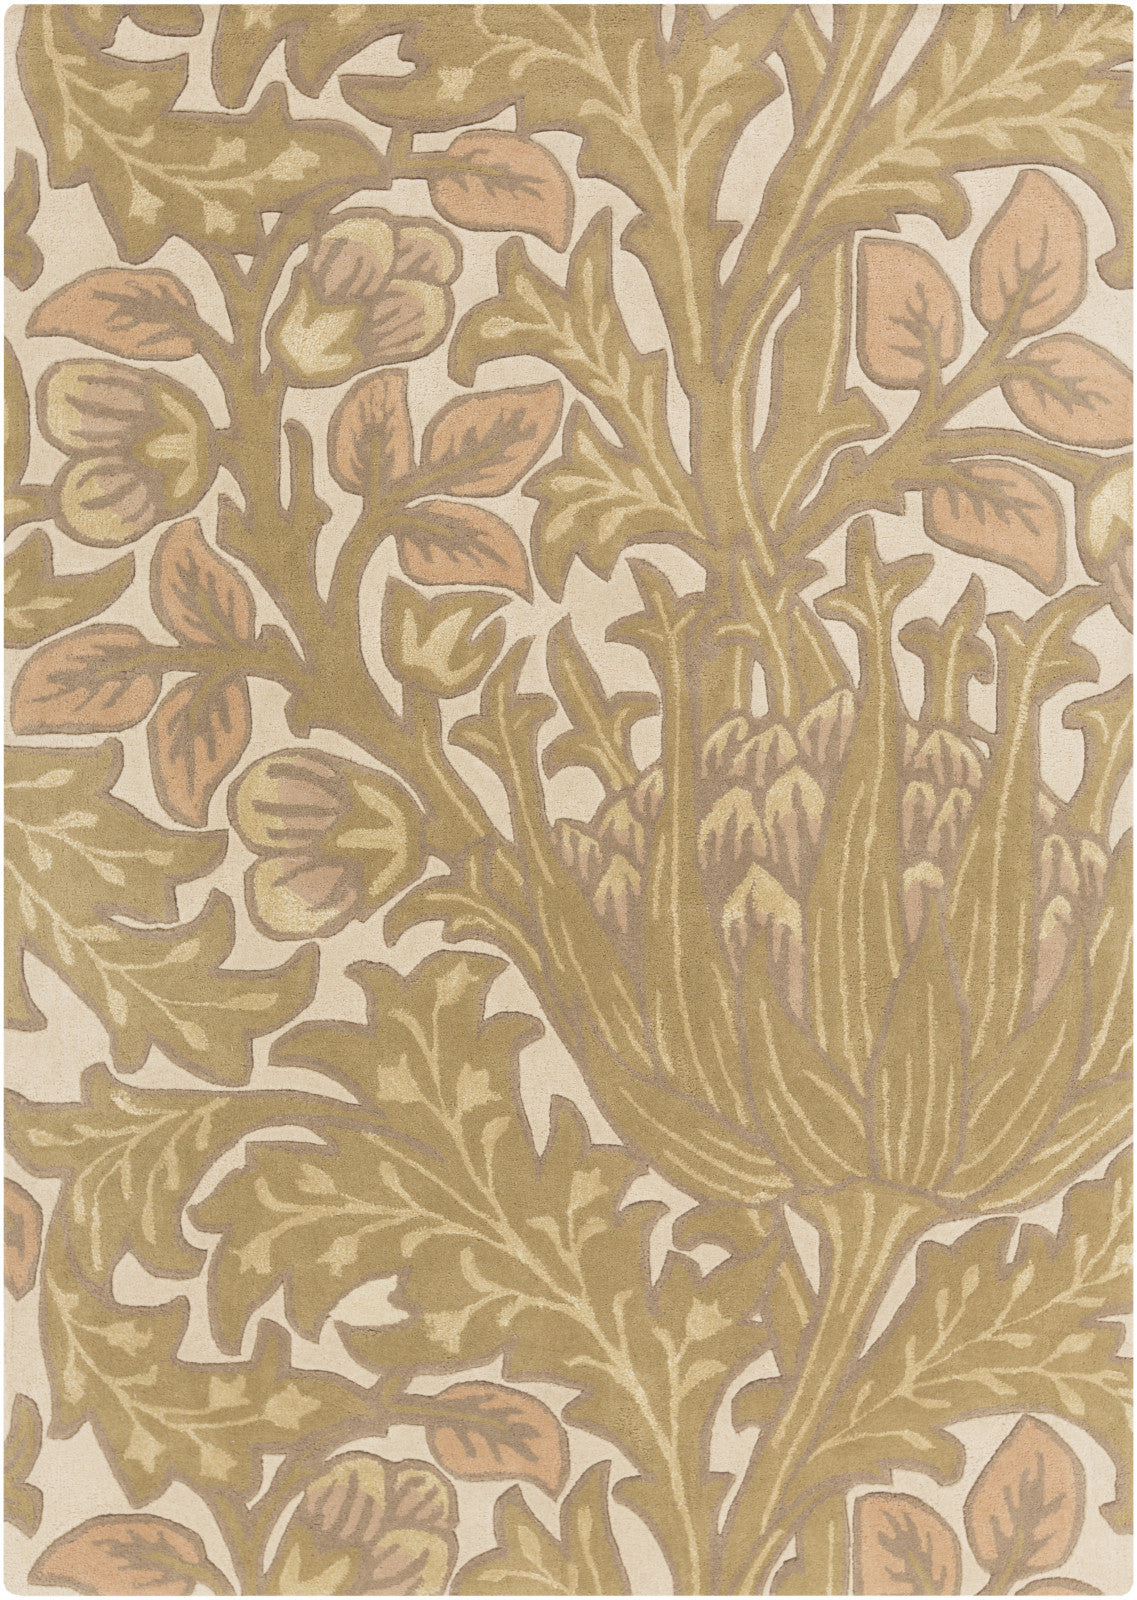 Surya WLM-3005 Area Rug by William Morris